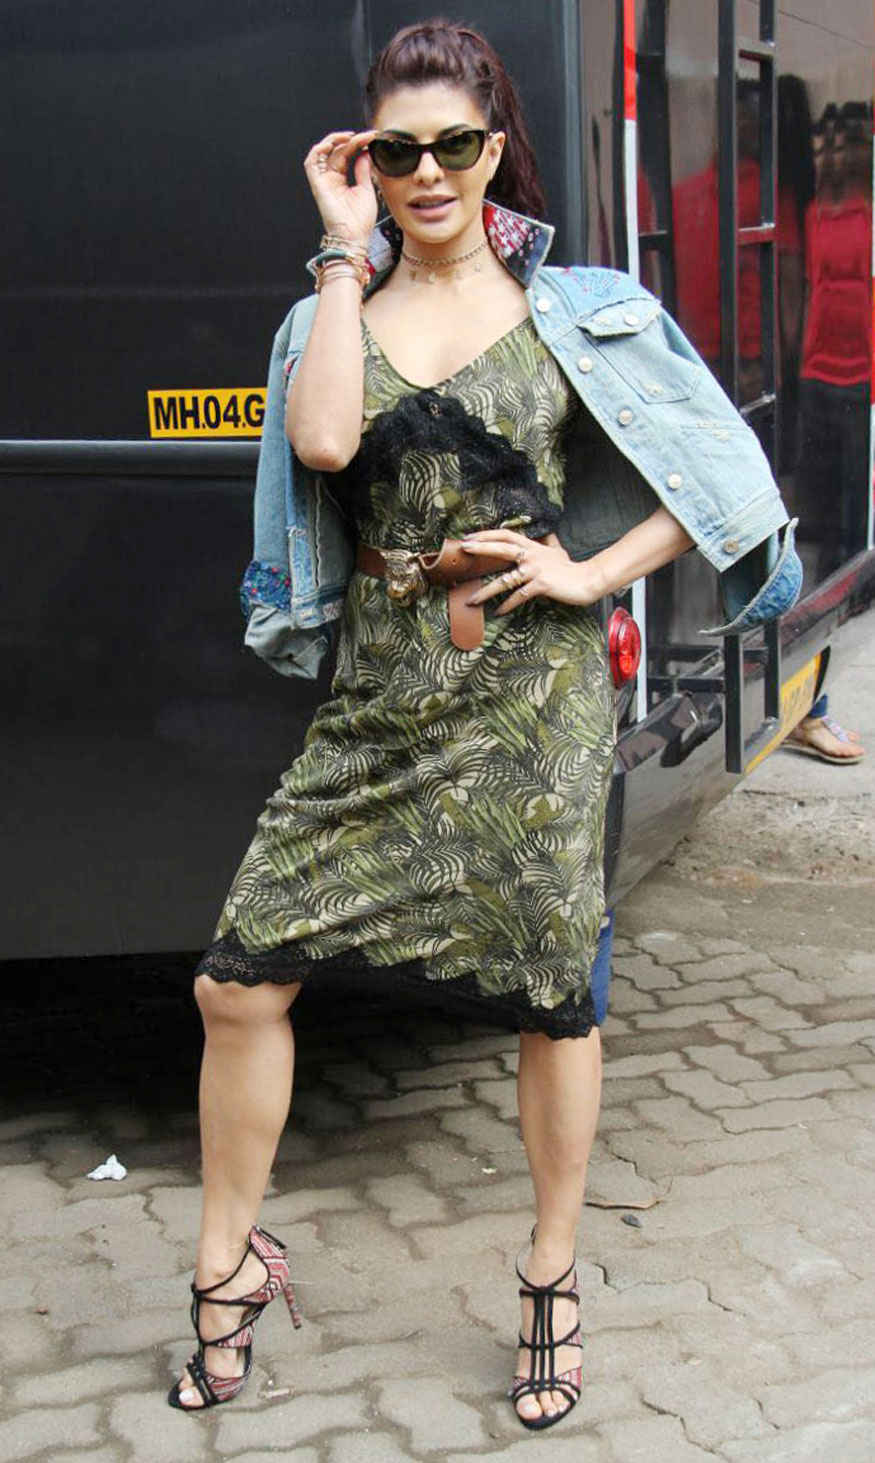 Jacqueline Fernandez at Mehboob Studio In Bandra West, Mumbai